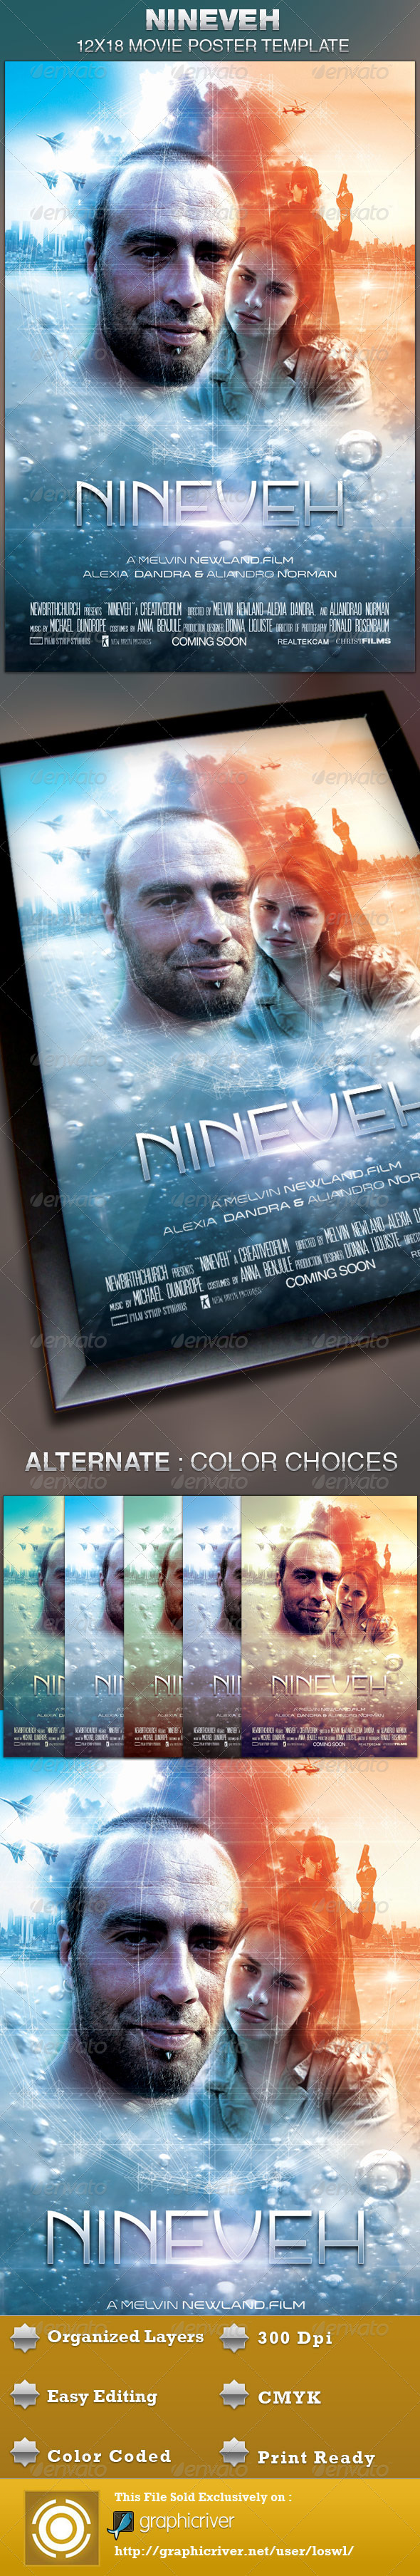 GraphicRiver Nineveh Movie Poster Template 4544781